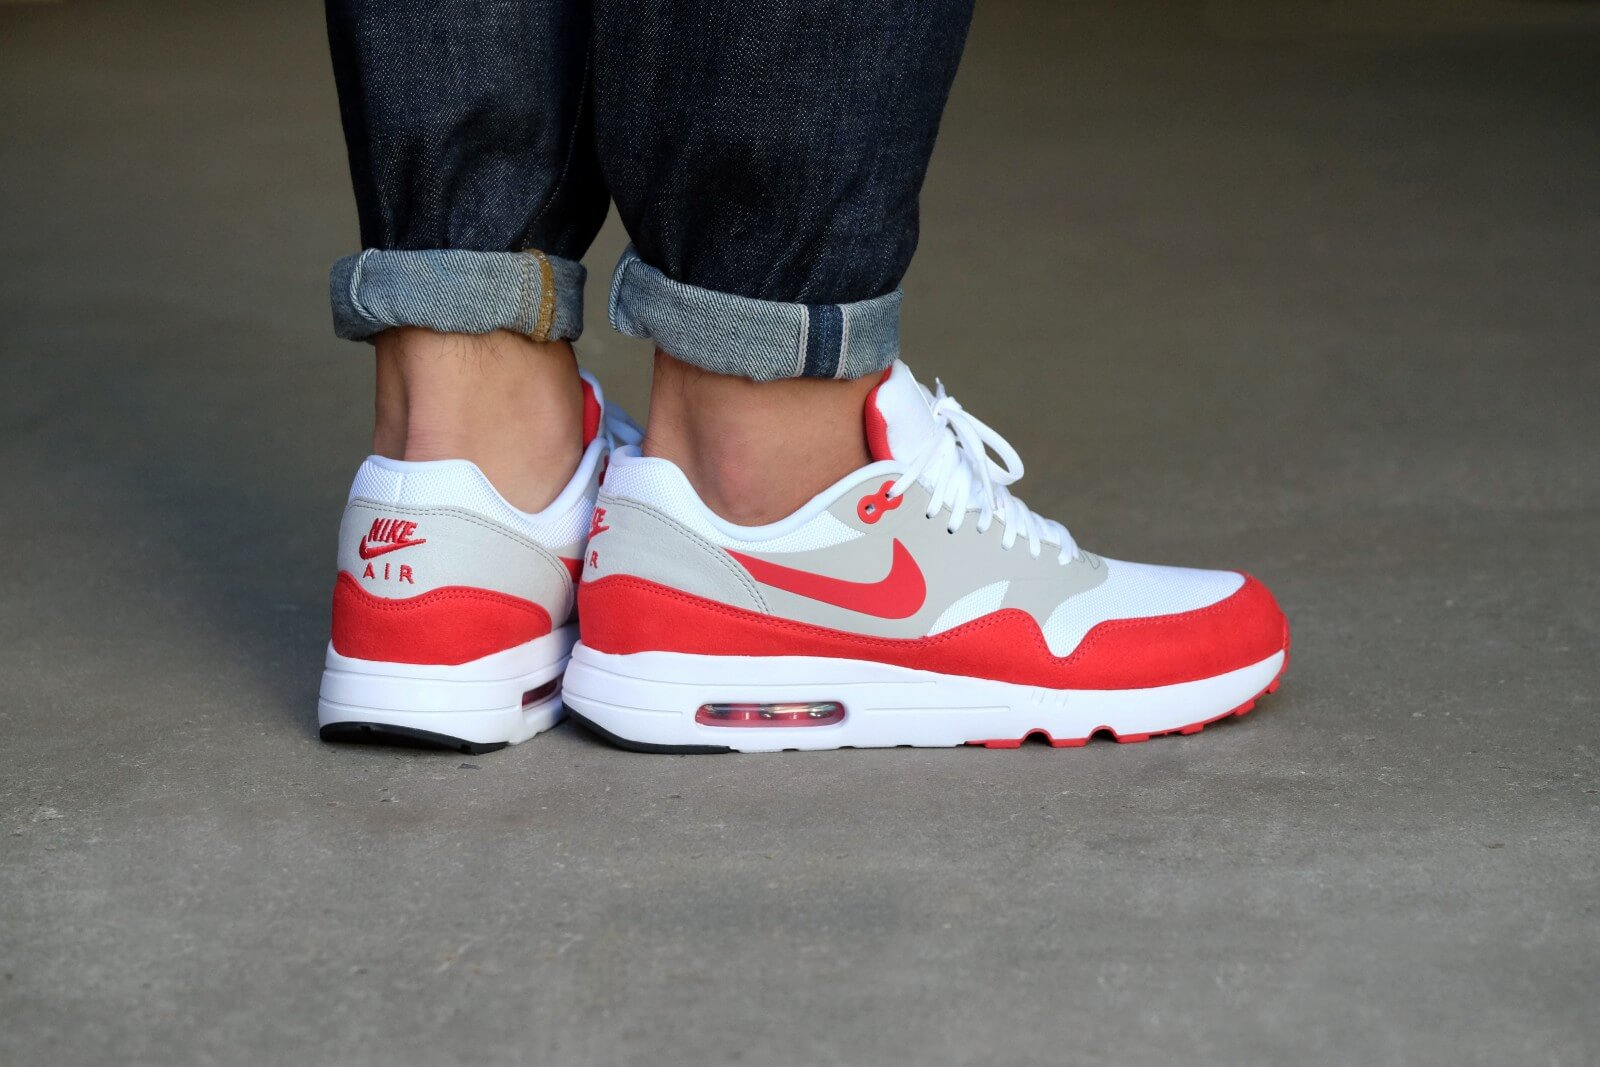 Nike Air Max 1 Ultra 2.0 LE Air Max Day WhiteUniversity Red 908091 100